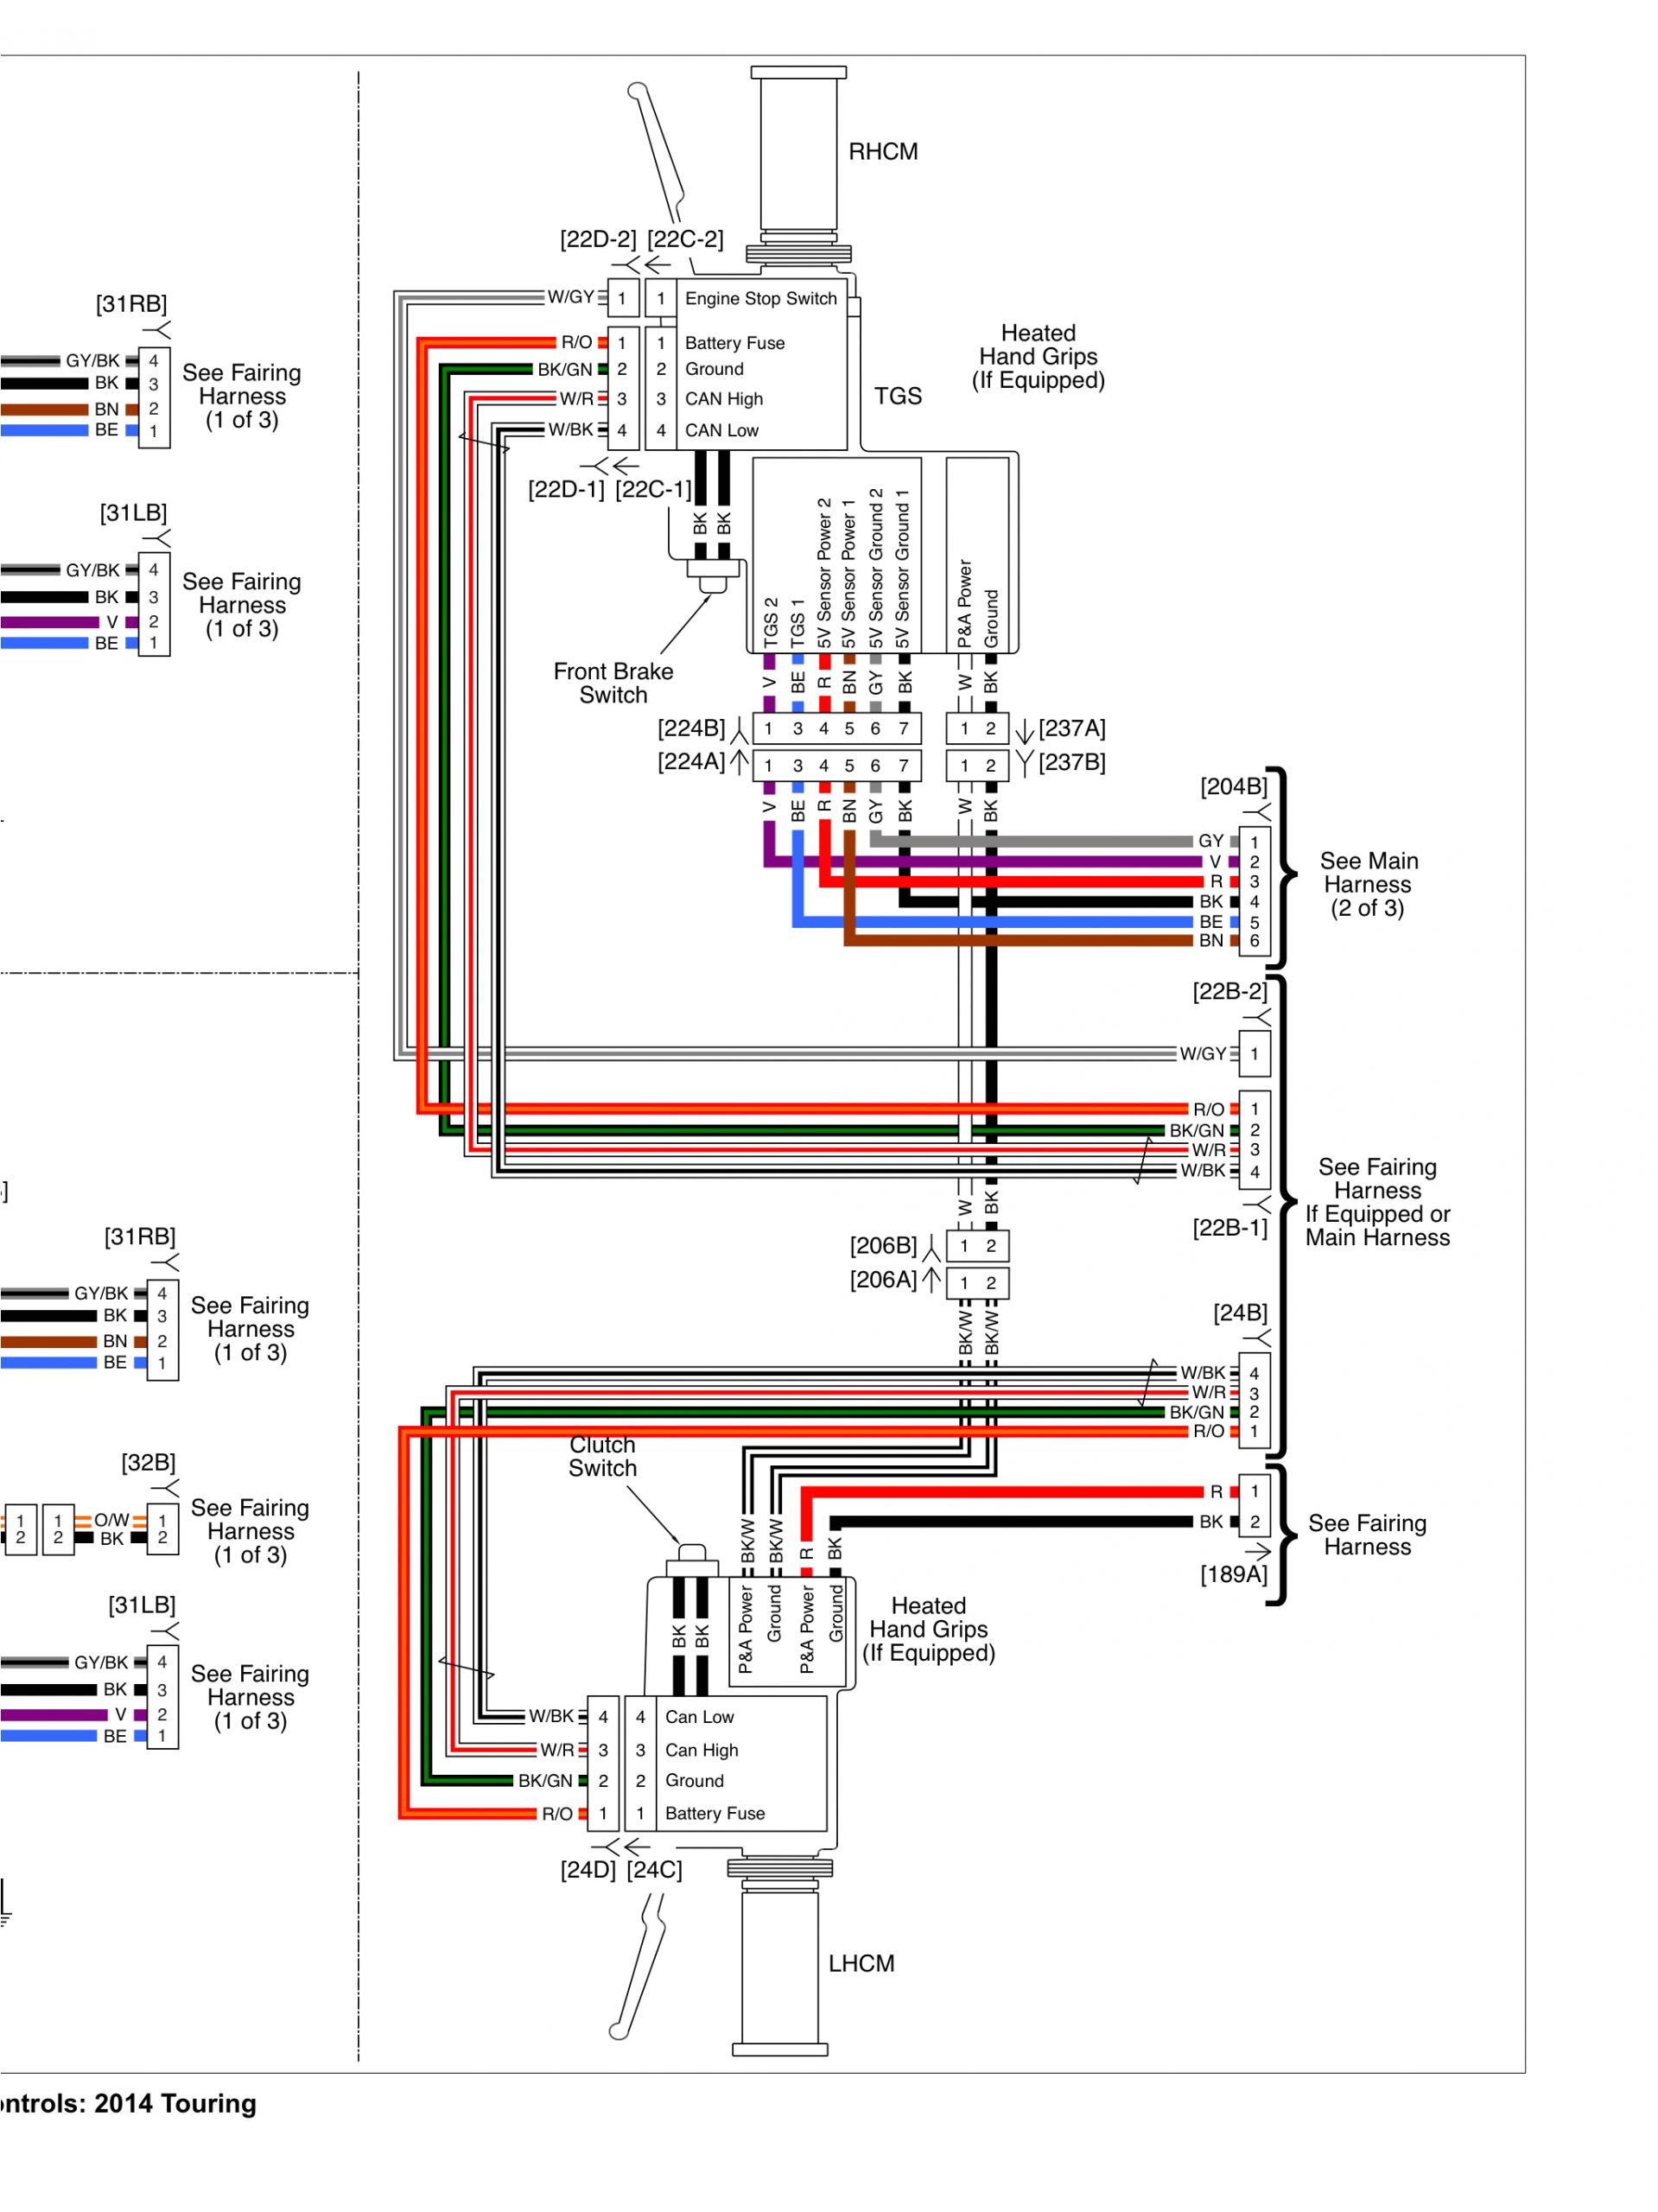 487873d1476494717 right hand controls schematic img 0574 png